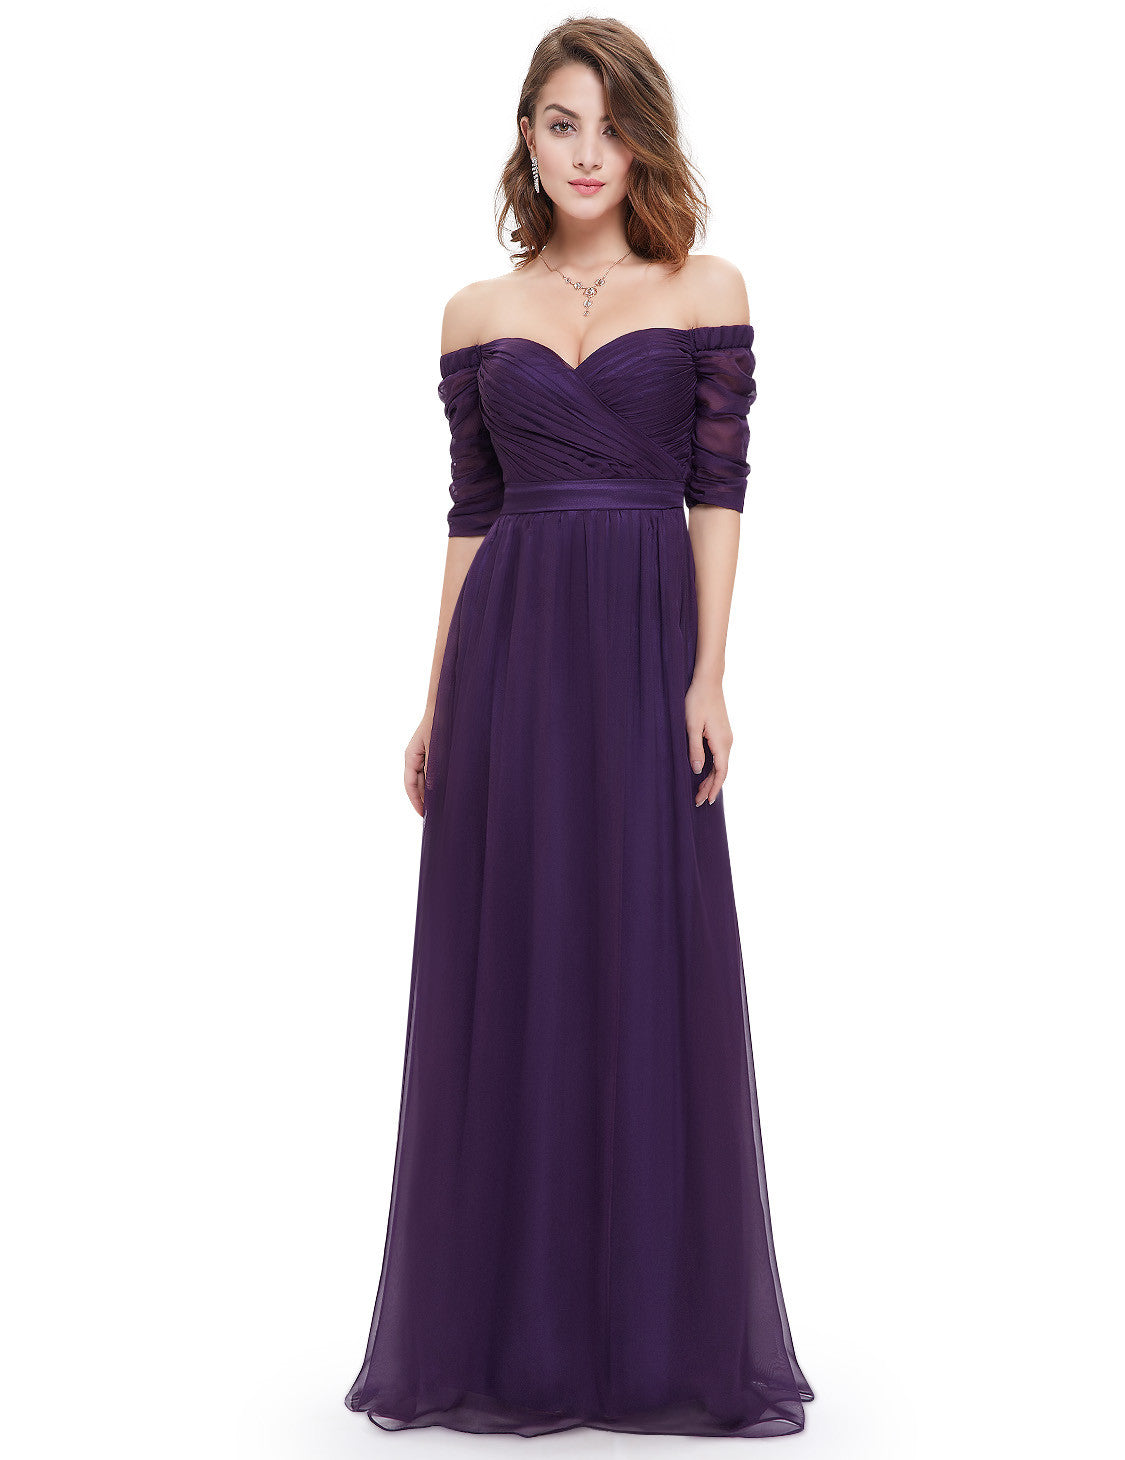 Purple Strapless Half Sleeve Dress